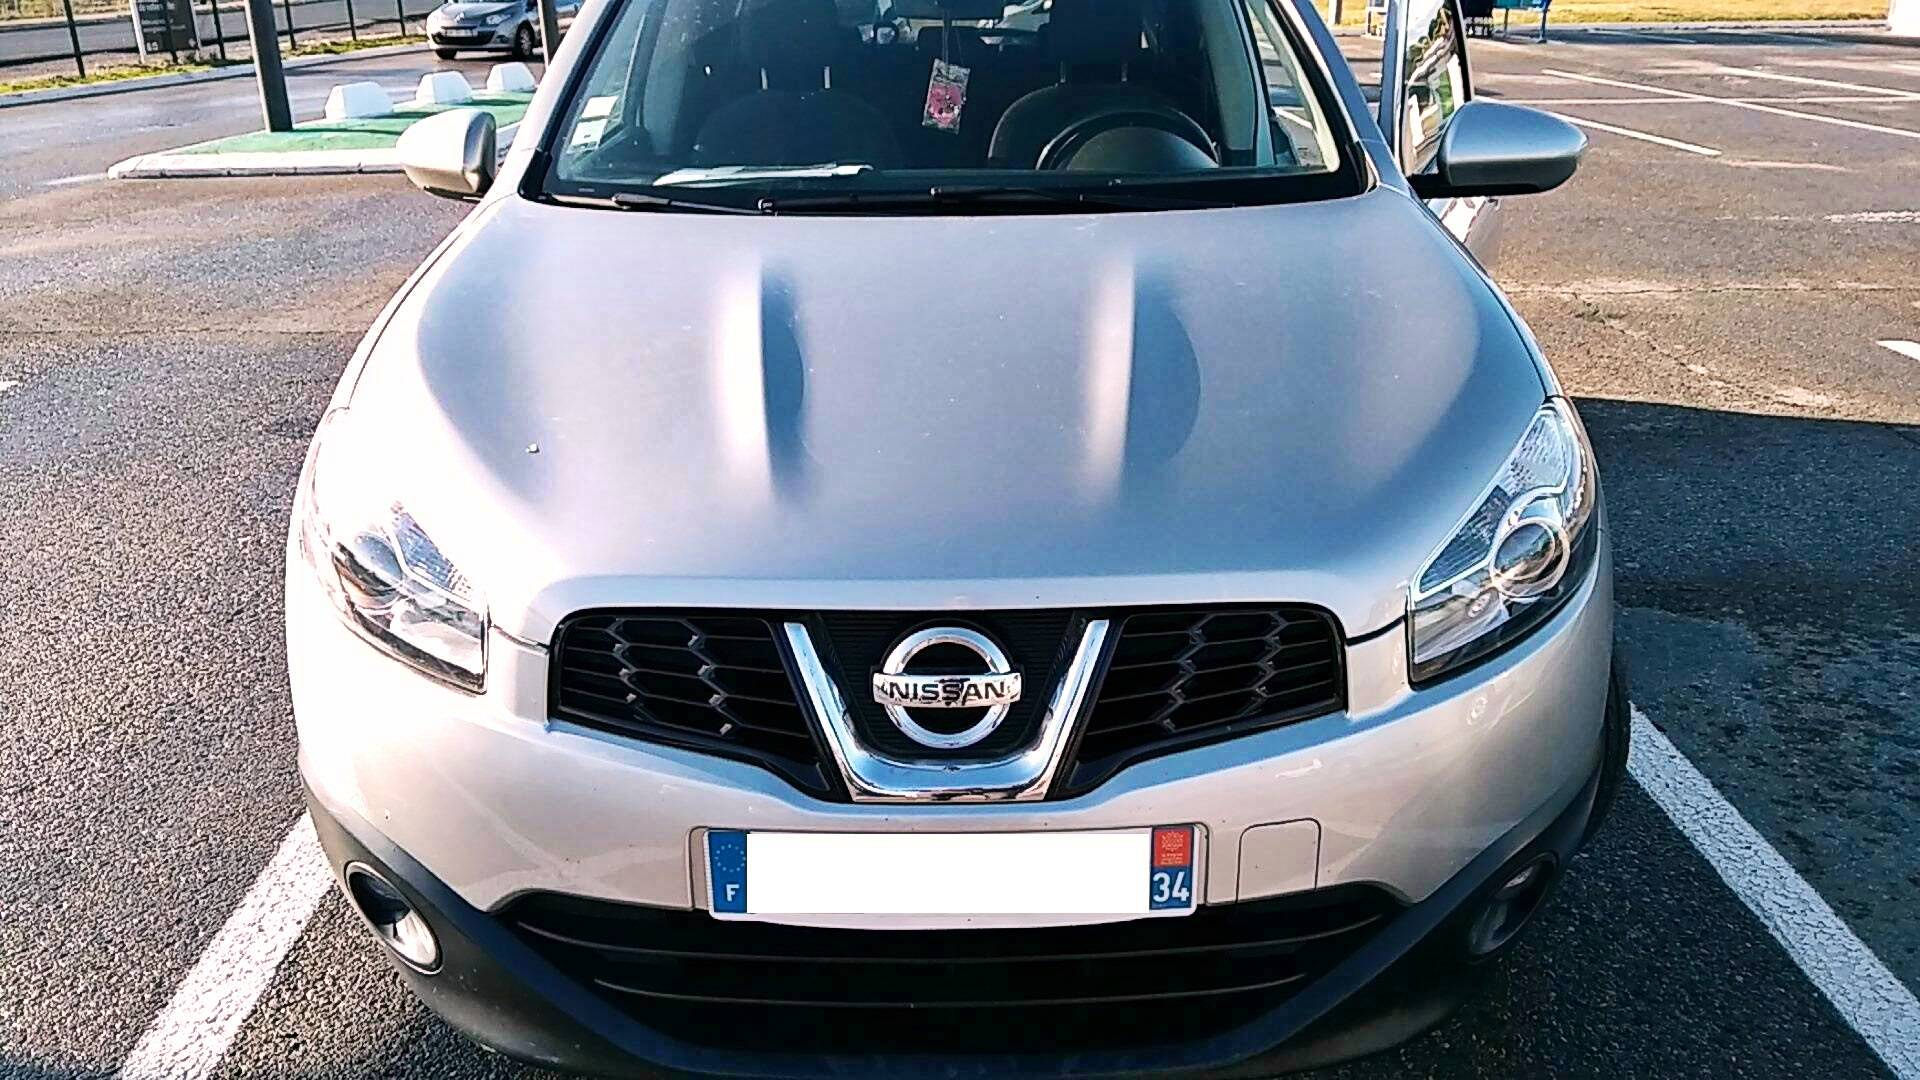 nissan qashqai d 39 occasion 1 5 dci 110 connect edition 2wd lattes carizy. Black Bedroom Furniture Sets. Home Design Ideas